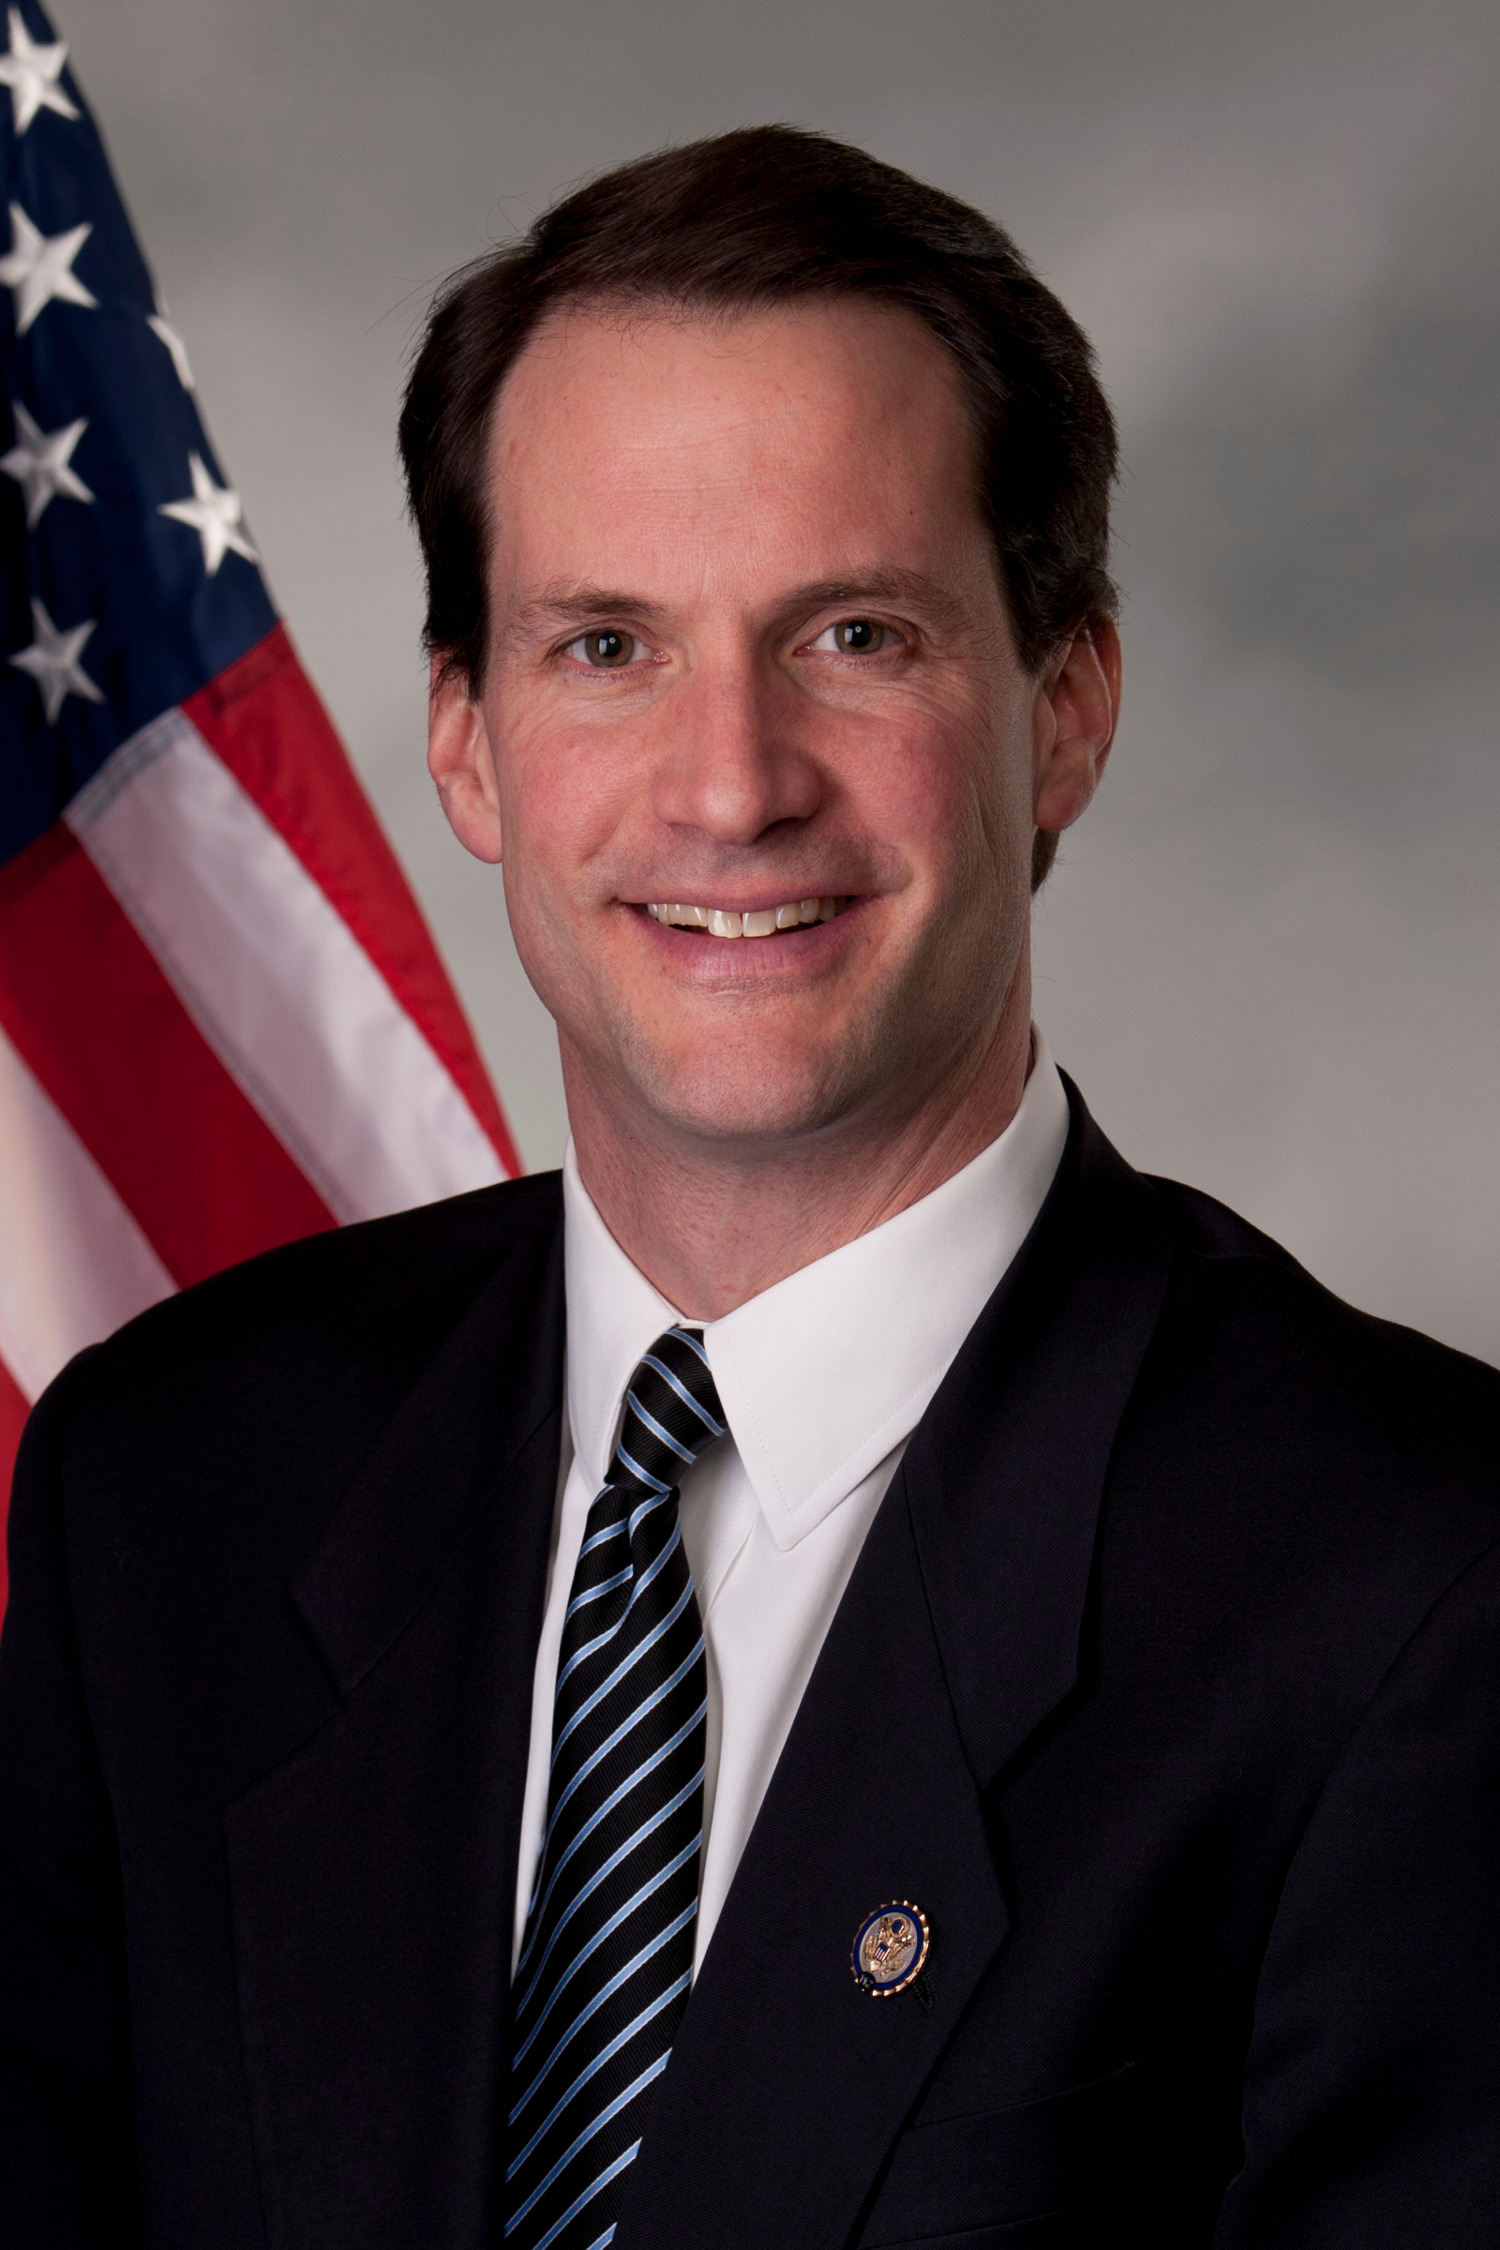 Representative Jim Himes